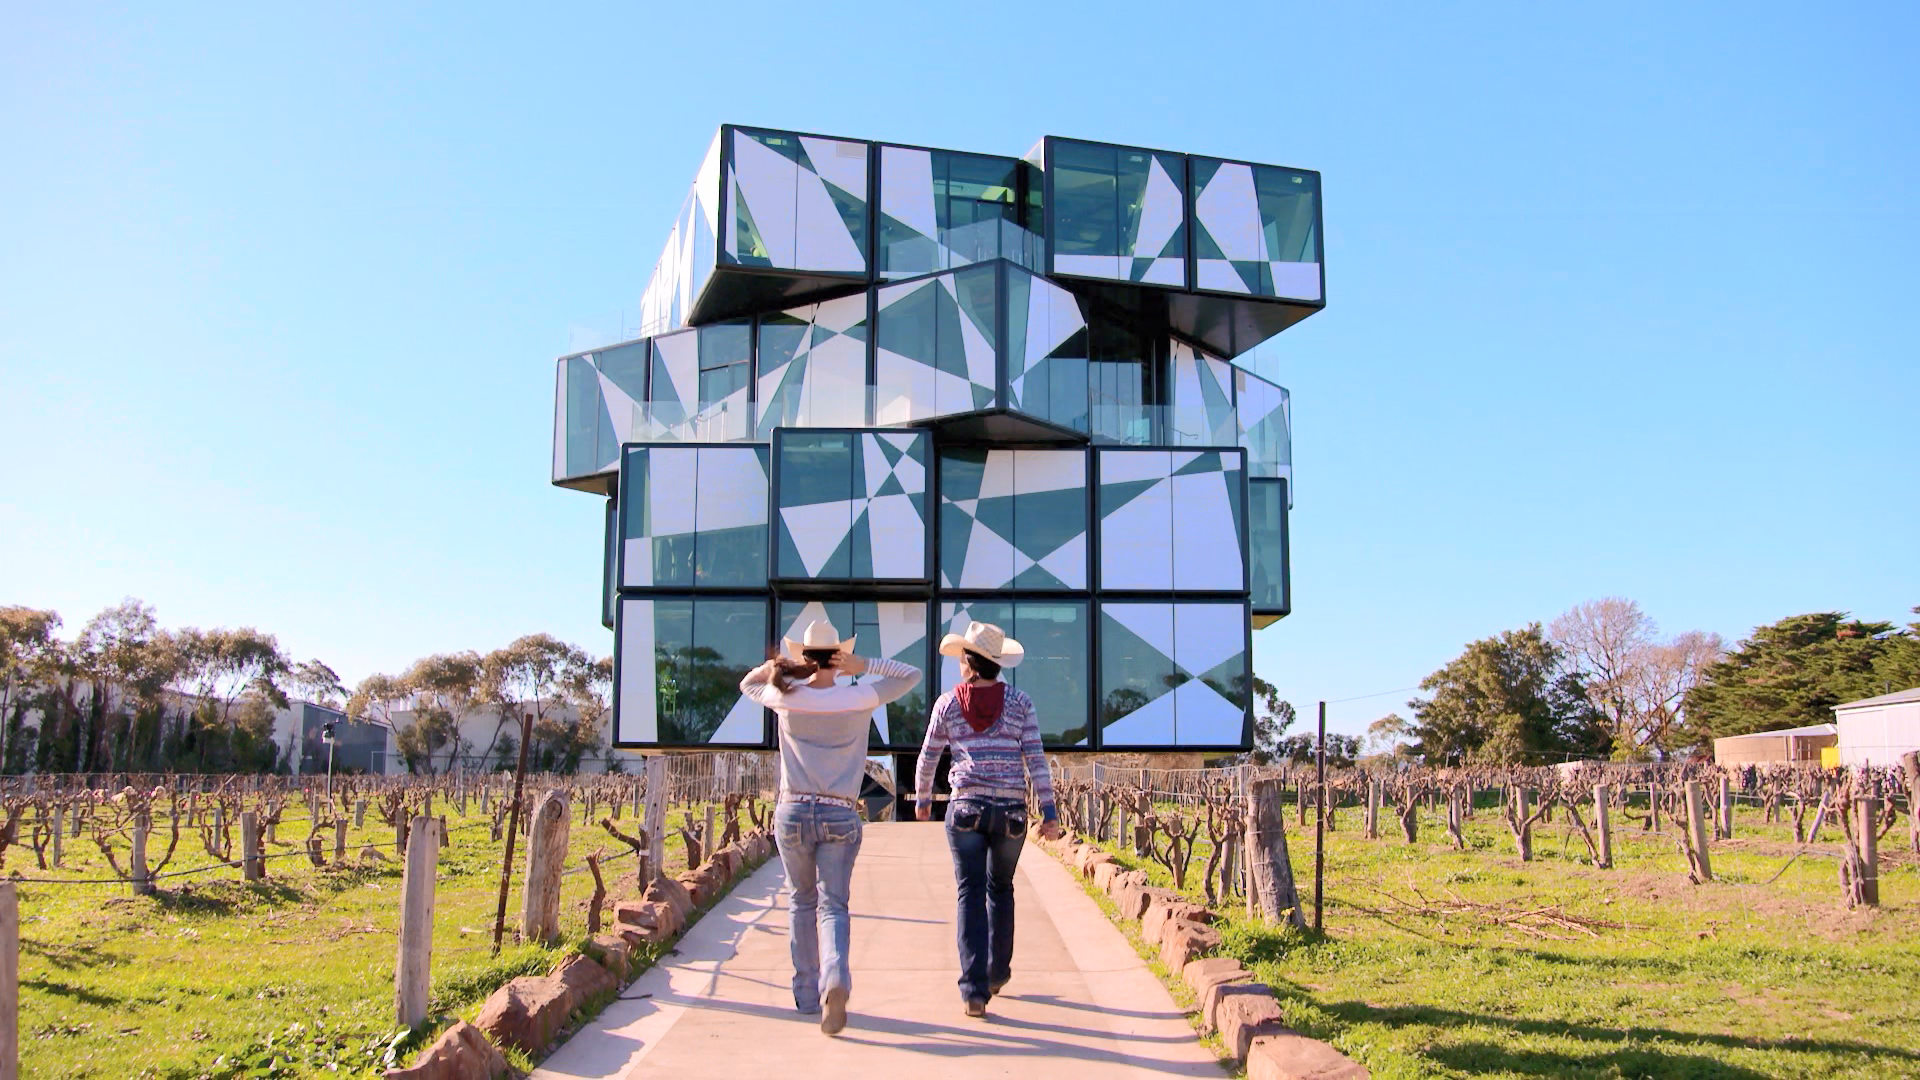 Cube cellar door confuses the Guides